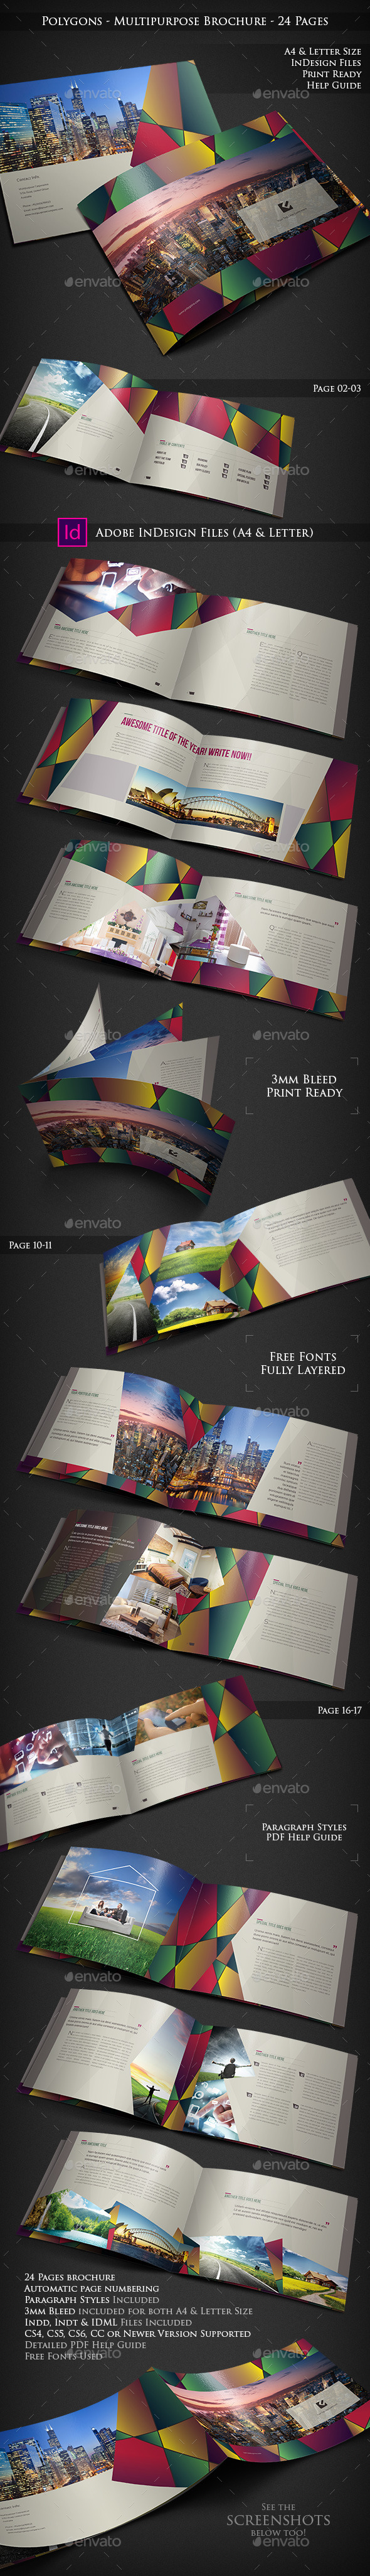 GraphicRiver Polygons Multipurpose Brochure 24 Pages 10490111